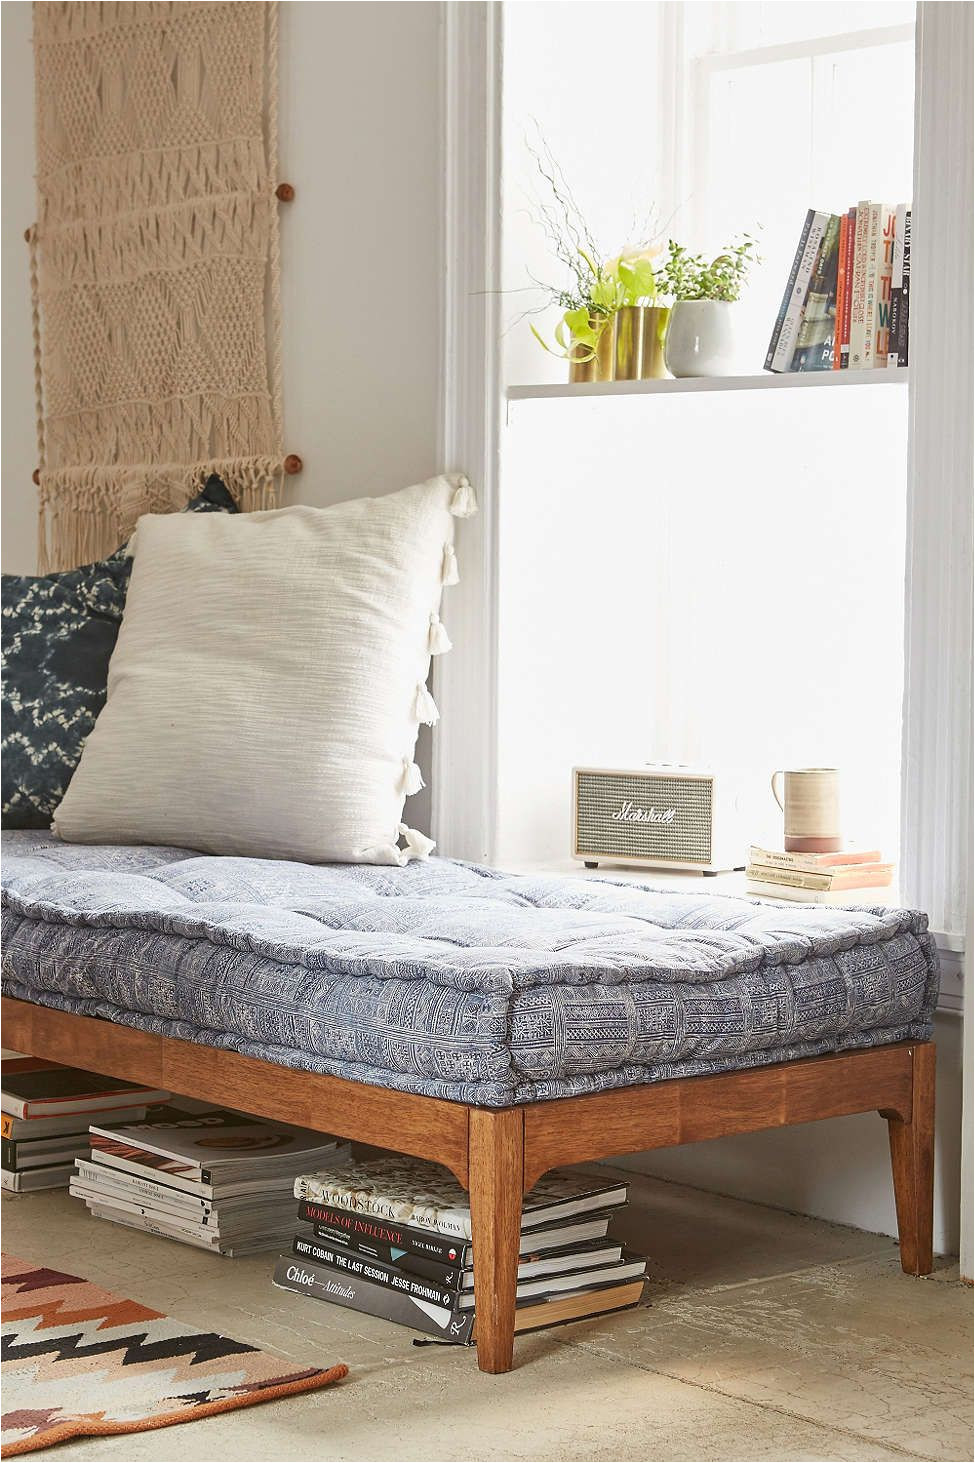 assembly home hopper daybed urban outfitters